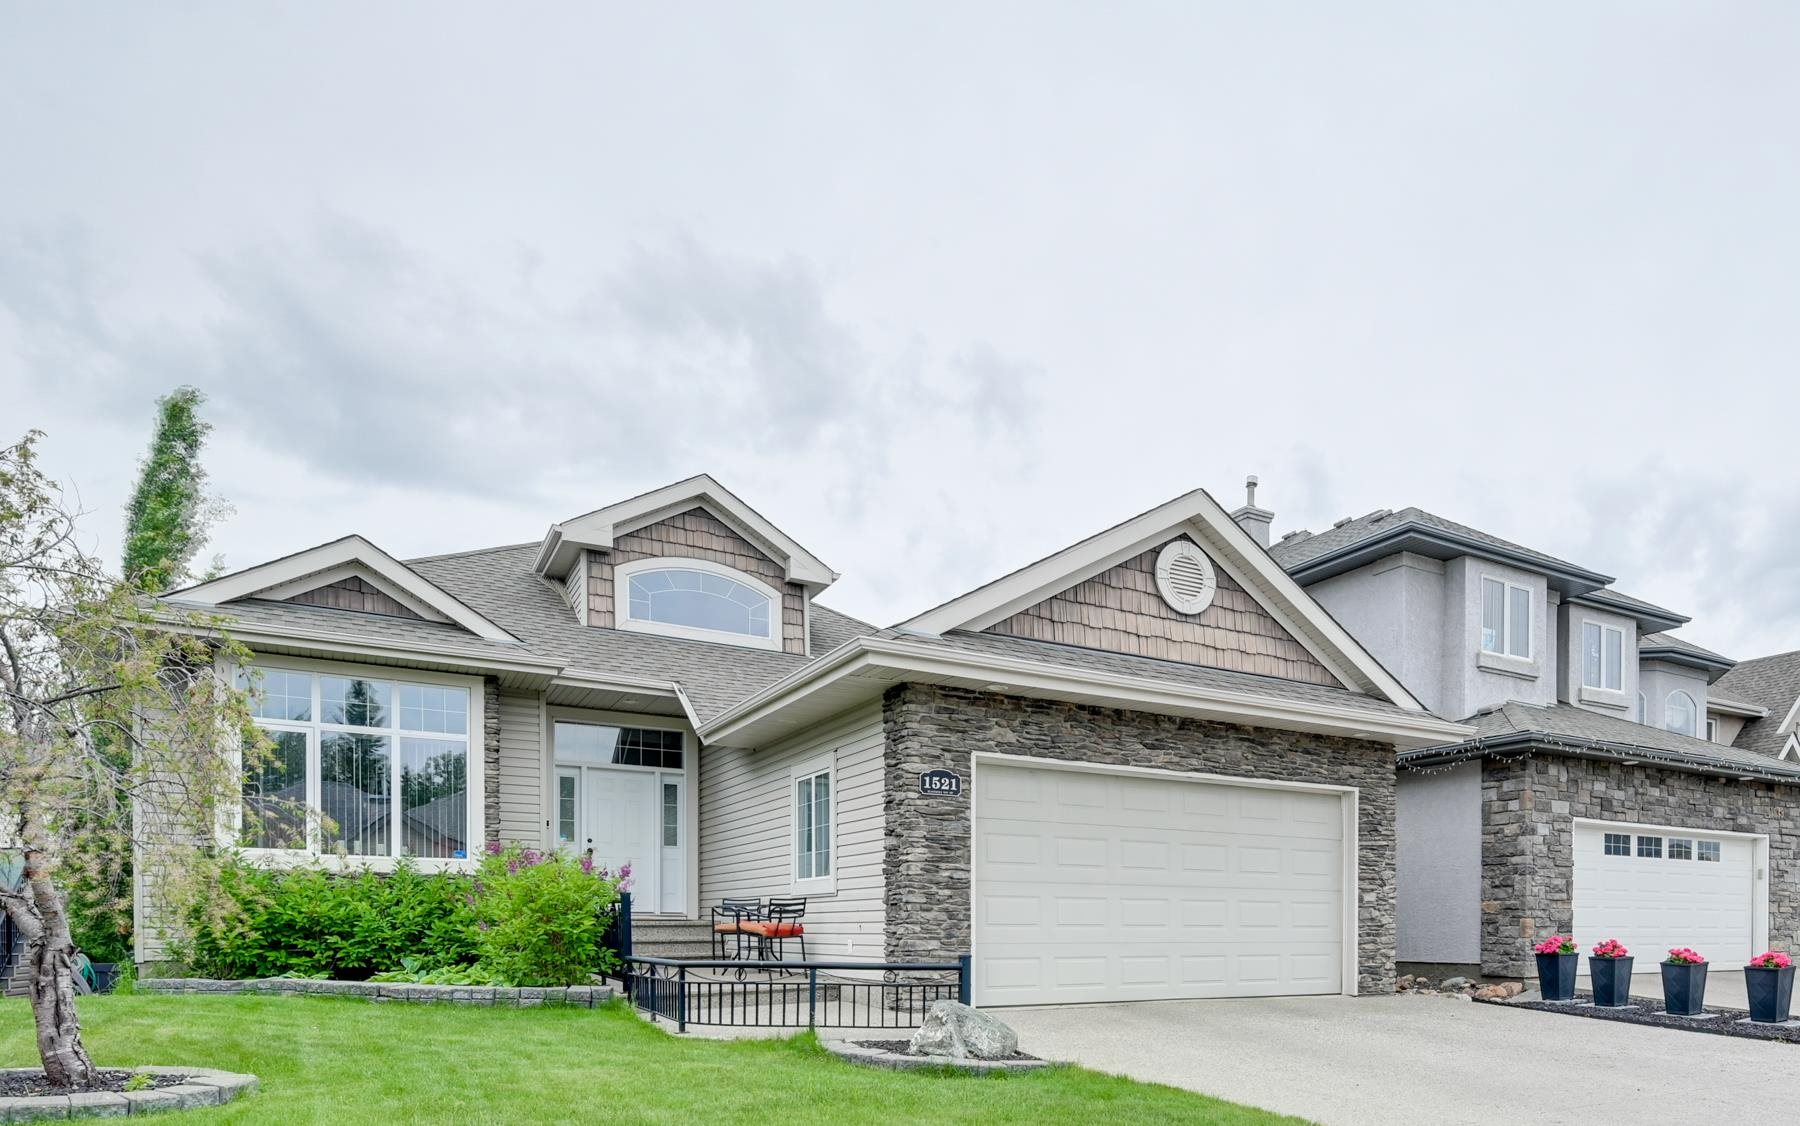 One look will do!! You will love this ONE OWNER open floor plan WALKOUT bungalow built by Camry Homes. Large foyer with curved staircase to lower level, main floor den/Bdrm and Maple hardwood throughout main floor. Bright and spacious living room with a gas fireplace. Kitchen features GRANITE countertops, eating bar, large nook with built in cabinets, and a walk through pantry to laundry with sink. Primary bedroom features a 5 pce ensuite. Enjoy the lower level with in floor heating, 2 spacious bedrooms, 4 pce bath, large family room to enjoy games night, workout area and  more! Other features include BRAND NEW A/C , gas line for BBQ on large upper low maintenance deck, oversized double garage with floor drain, newer furnace and HWT, NON SMOKING and PET FREE. Located close to all amenities. A must to see!!